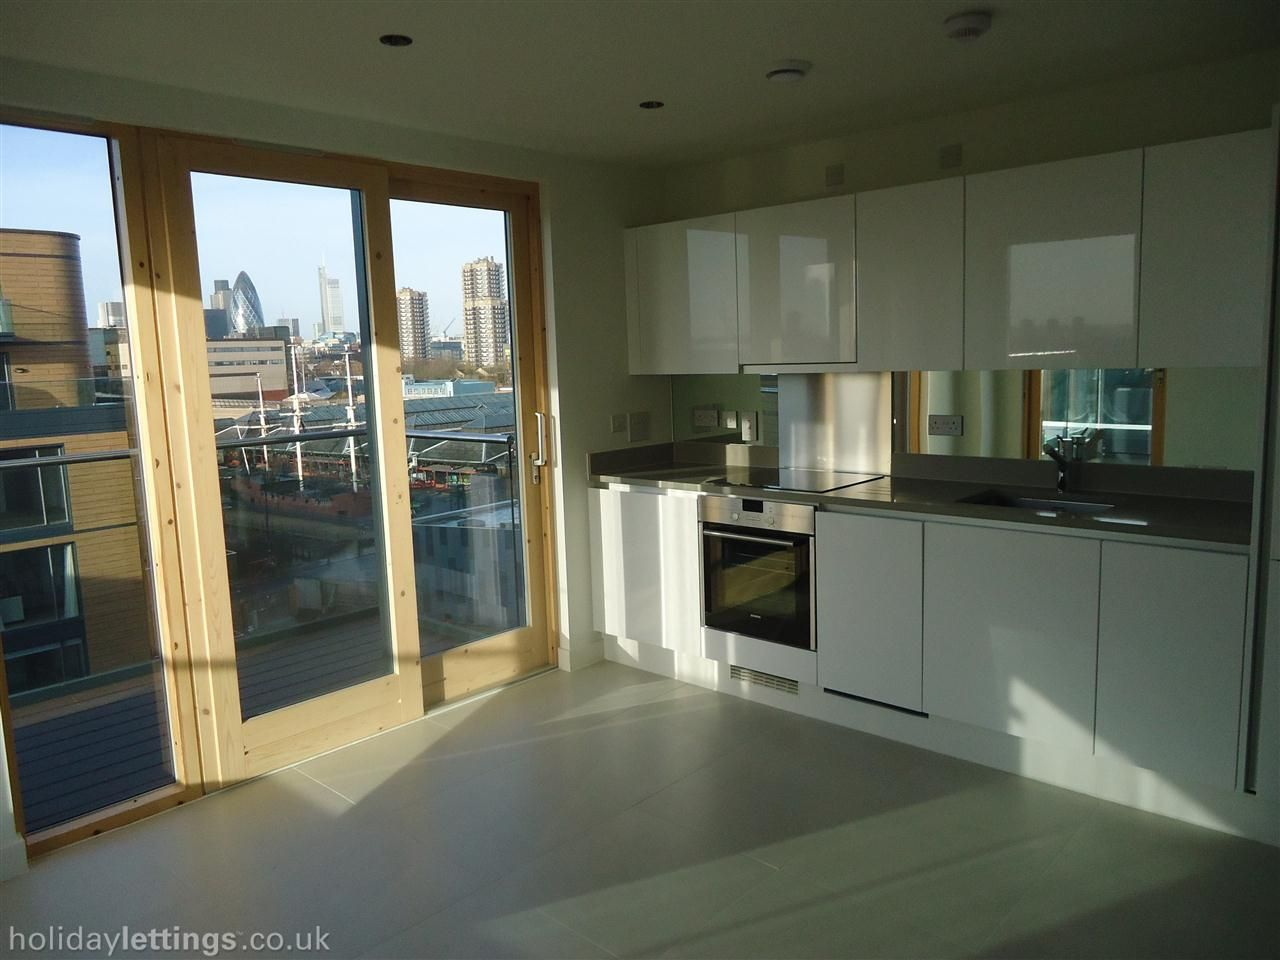 1 Bedroom Apartment In Central London Zone 1 To Rent From 800 Pw With Wheelchair Access Balcony Terrace Tv And D 1 Bedroom Apartment Bedroom Apartment Home